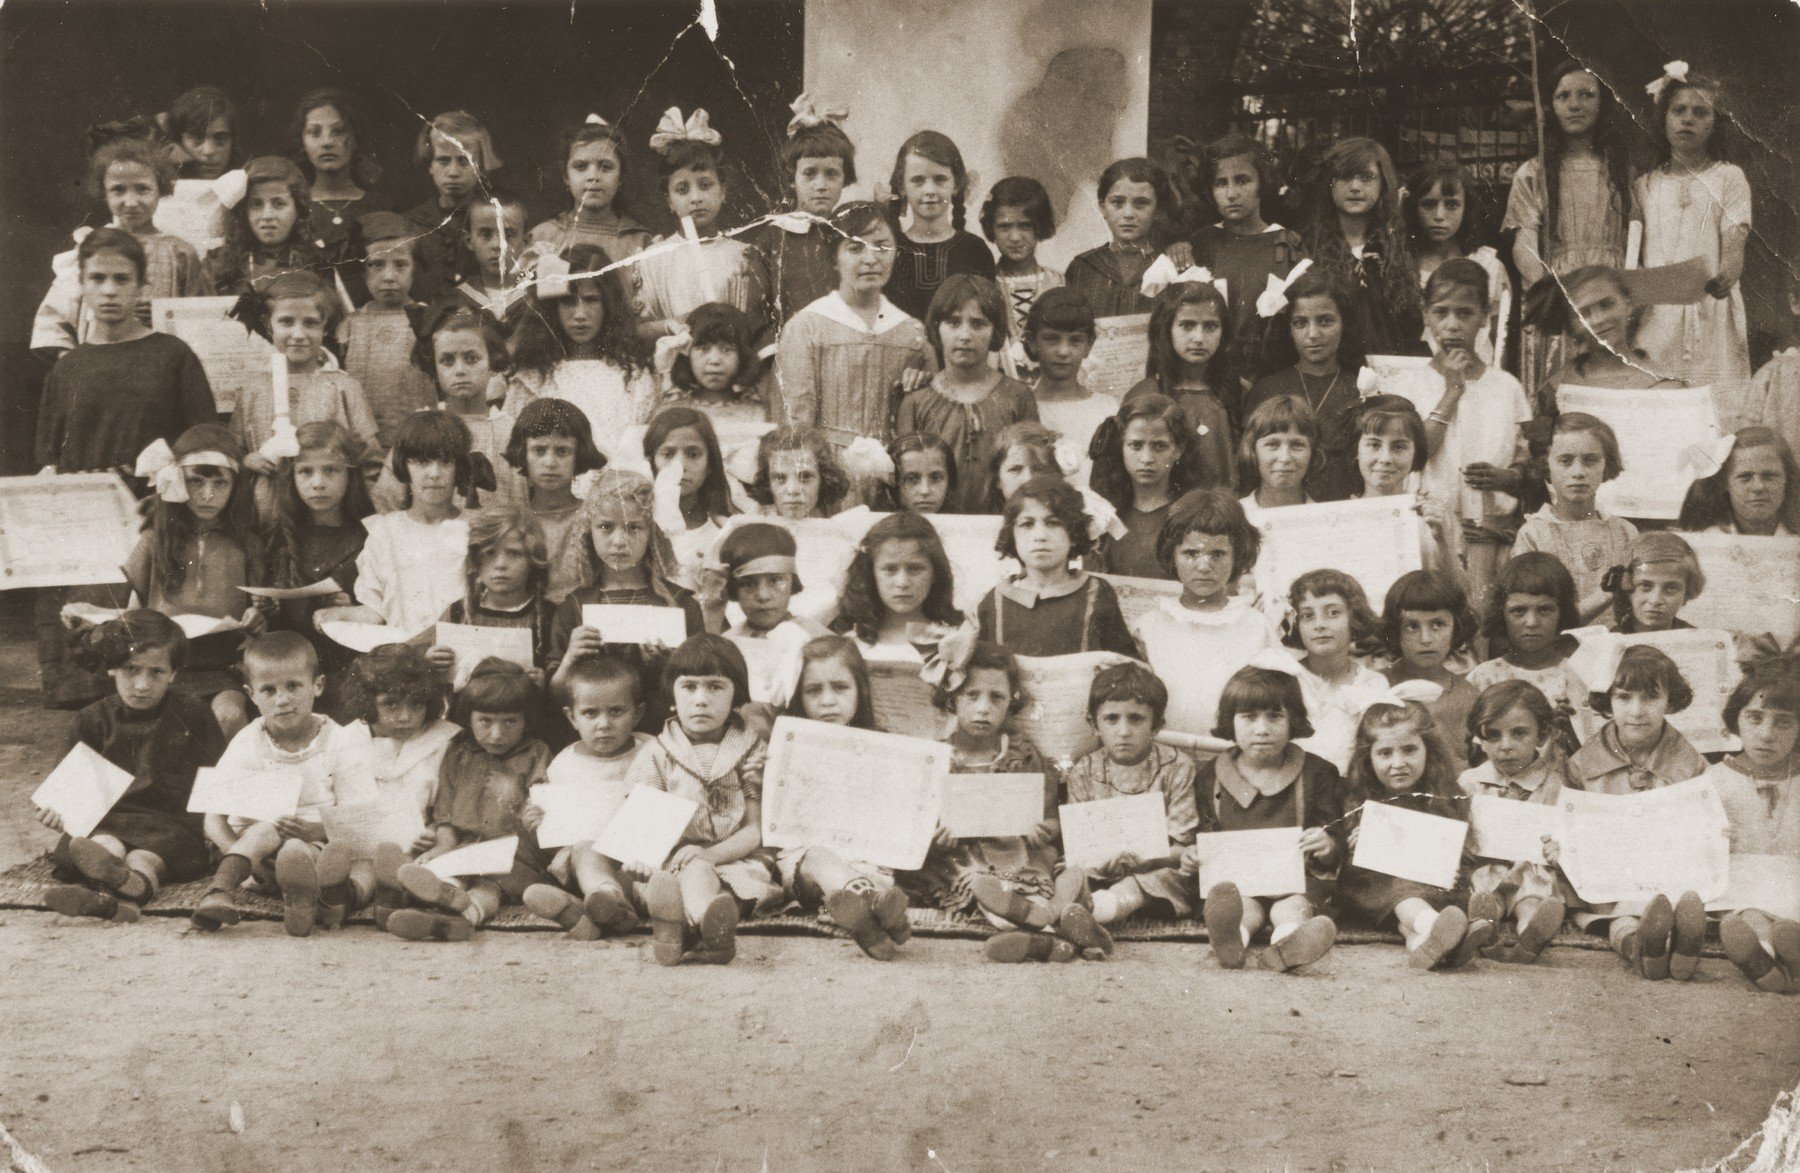 Group portrait of children holding their diplomas at a school in Bitola, Macedonia.